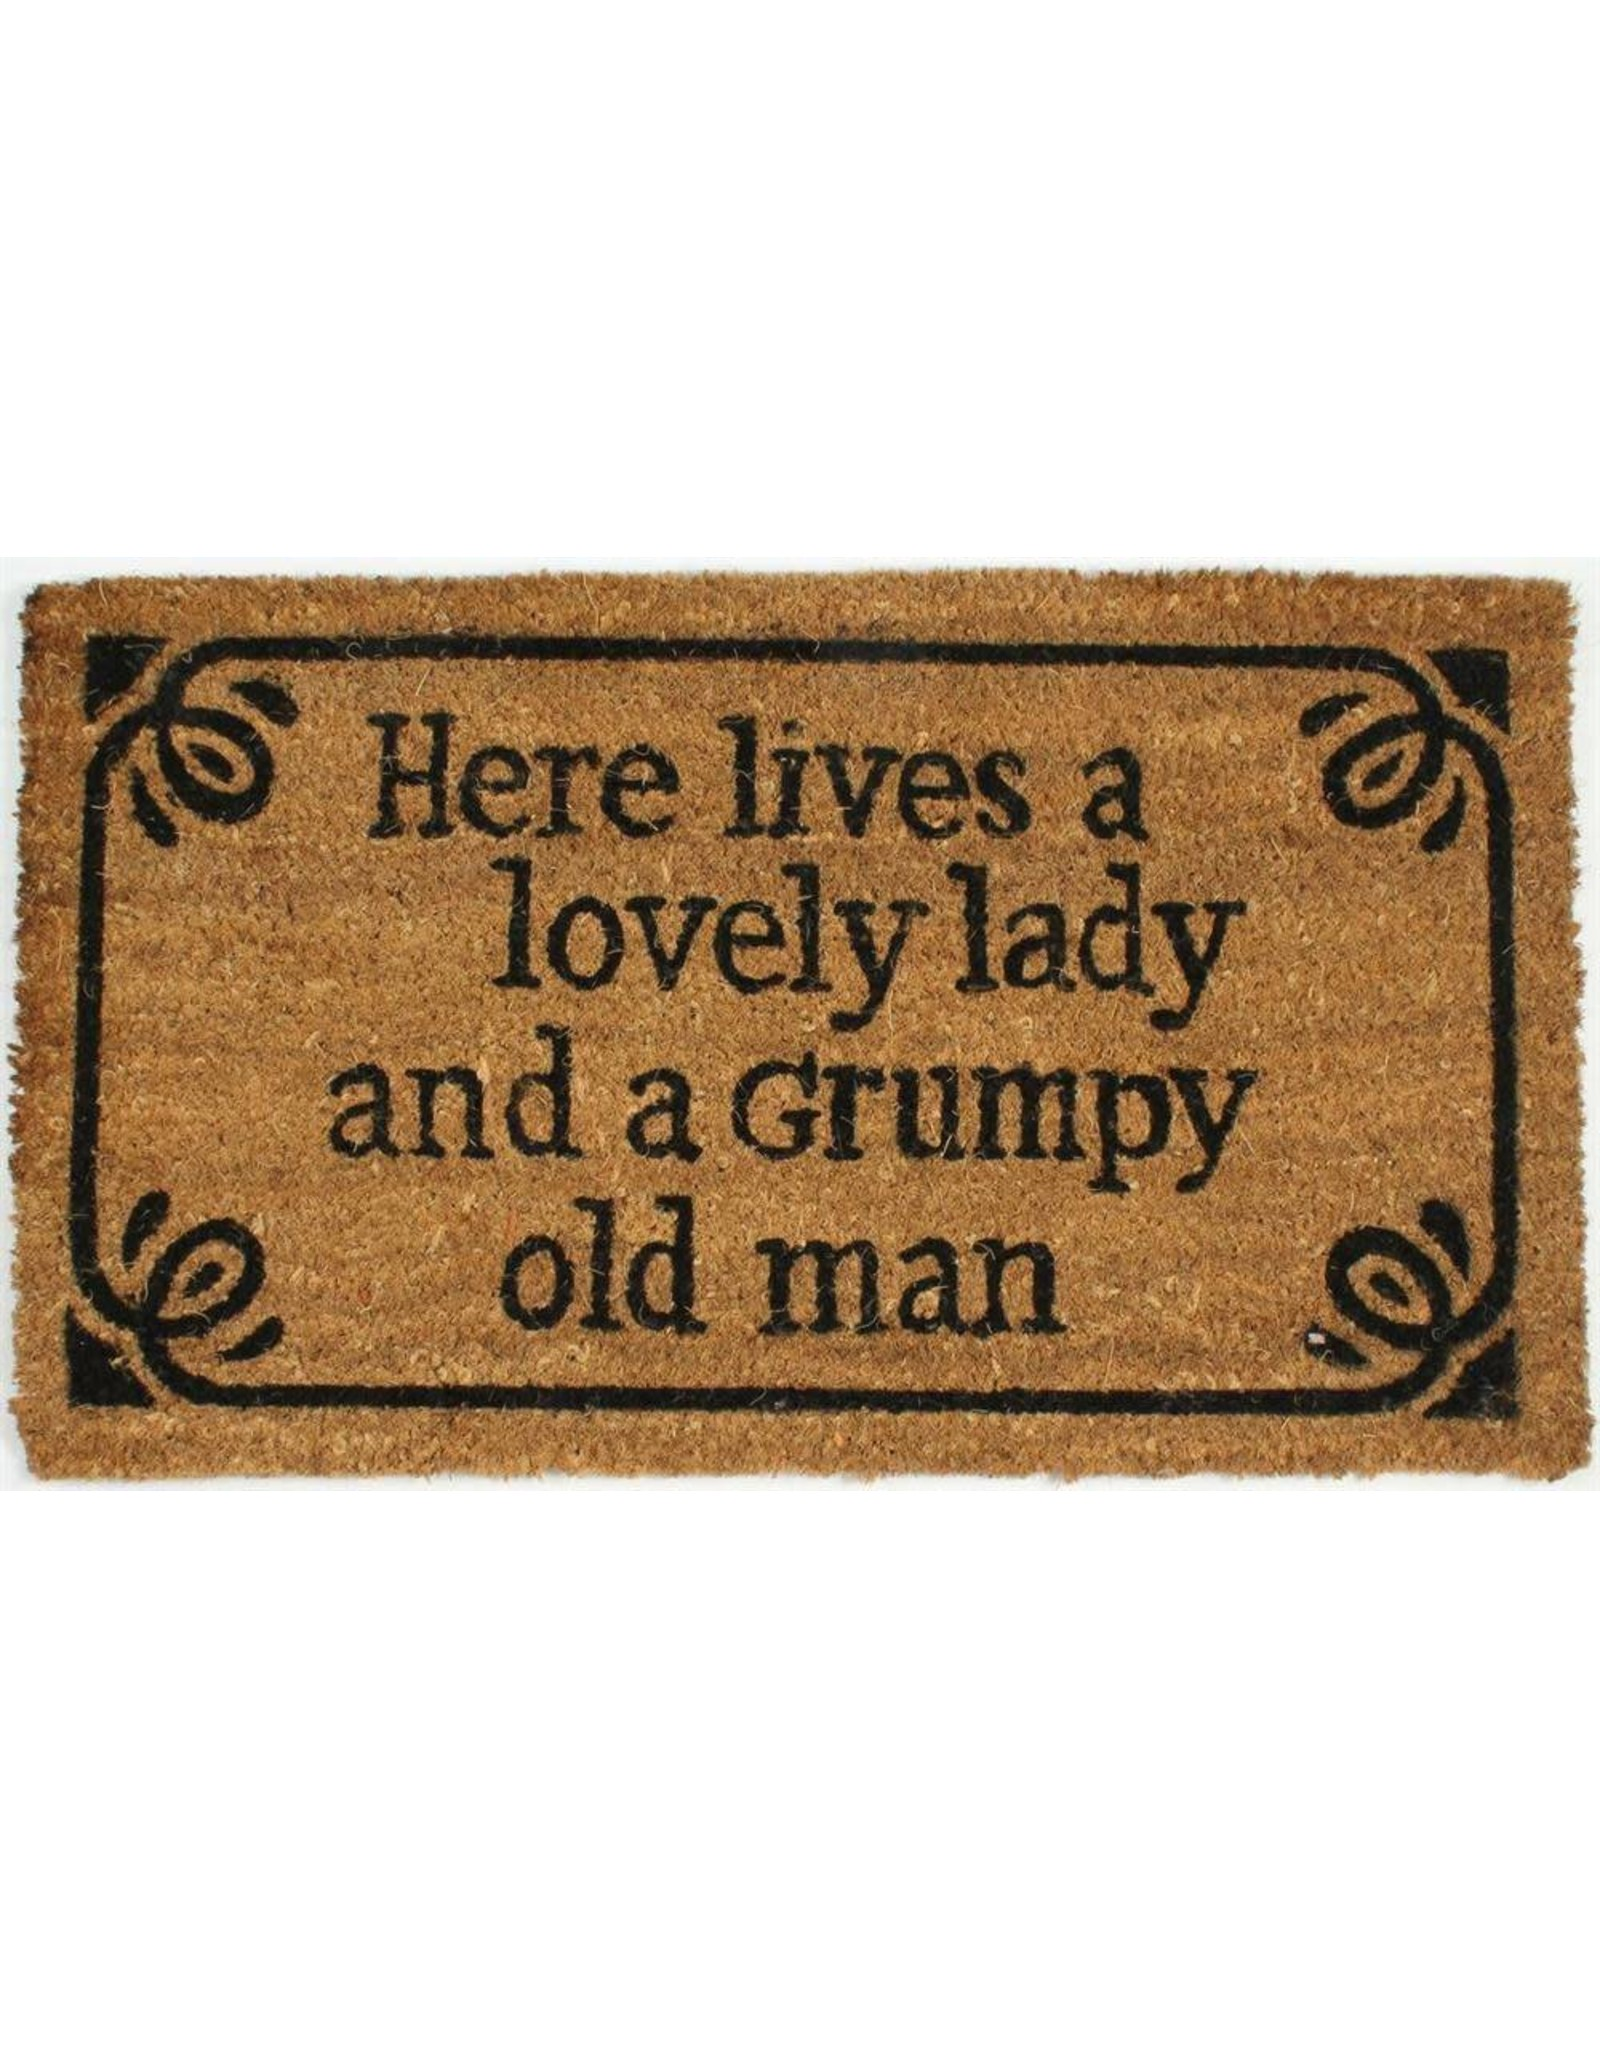 doormat with text 'here lives a lovely lady and a grumpy old man'